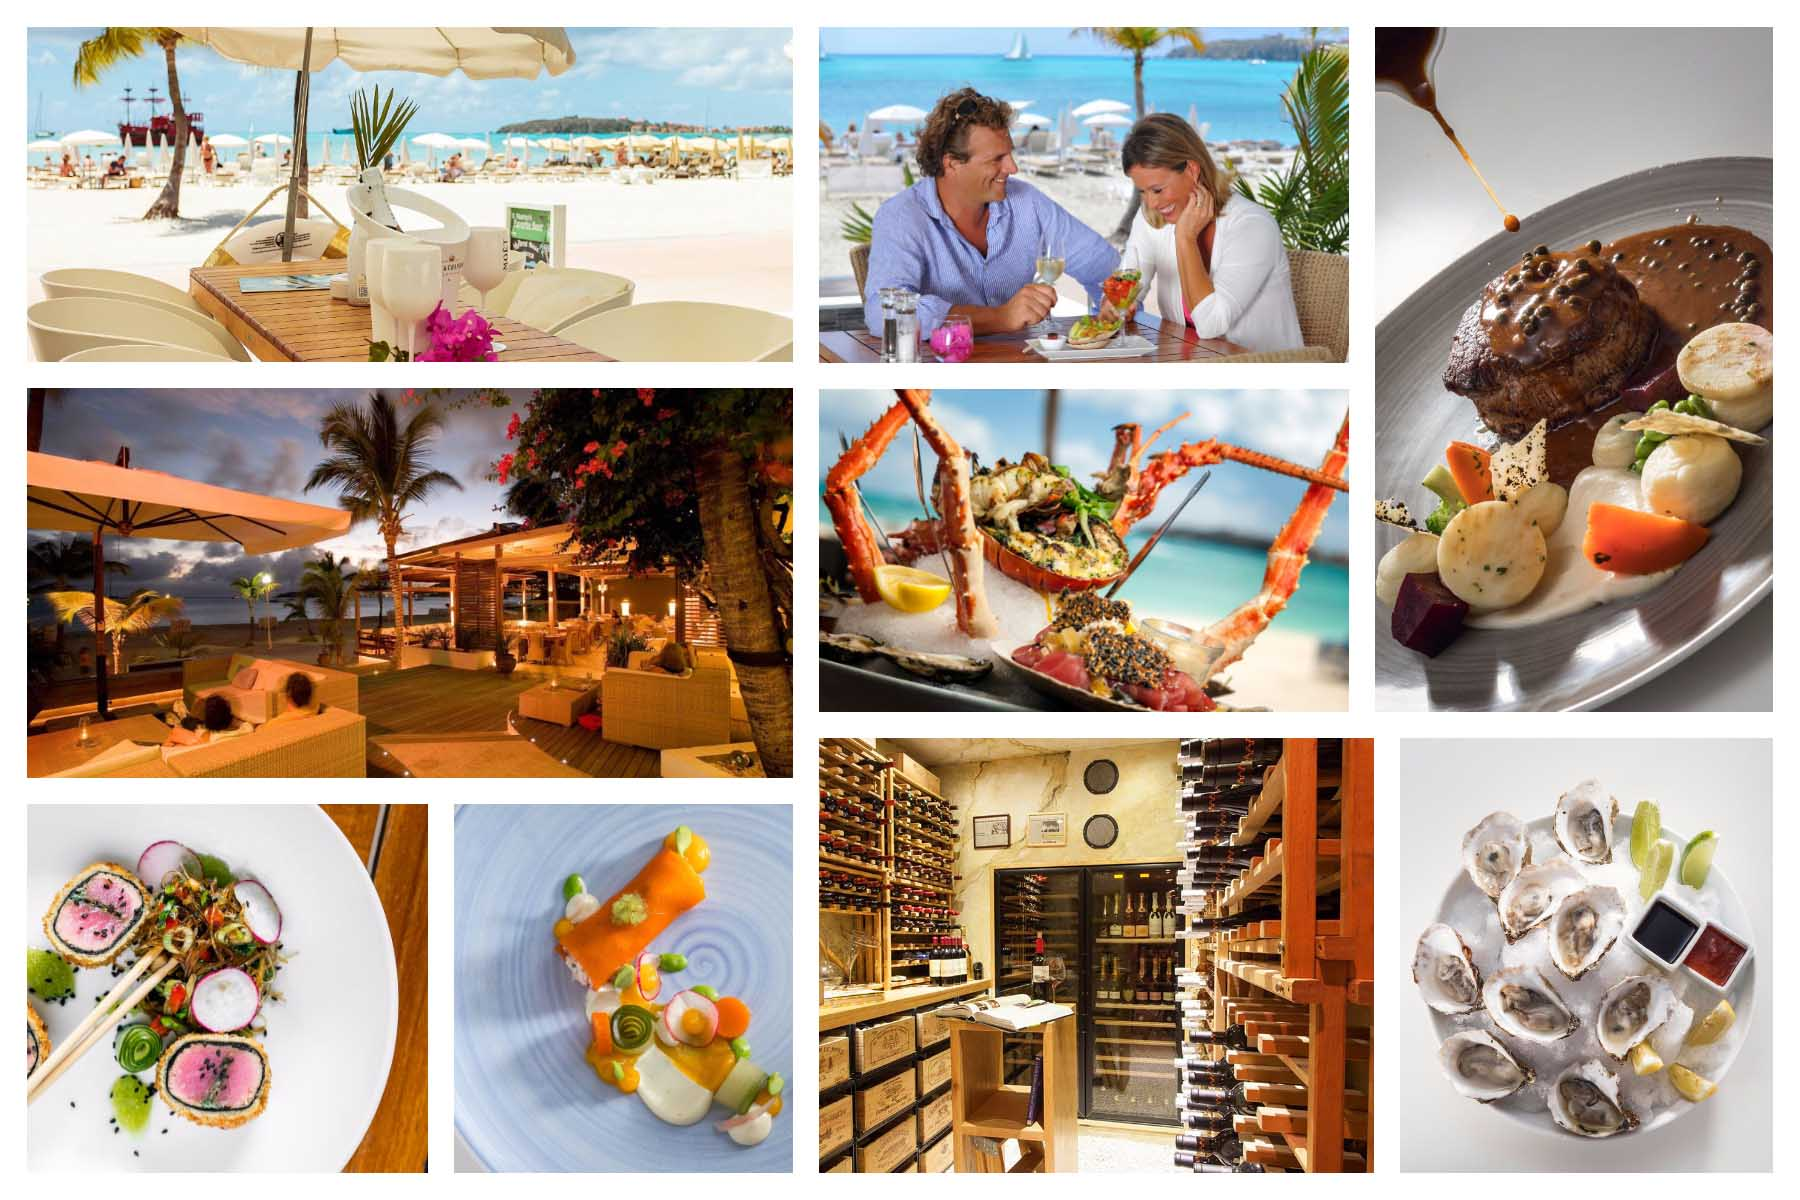 Ocean Lounge Bar and Restaurant Day & Night - at Holland House Beach Hotel